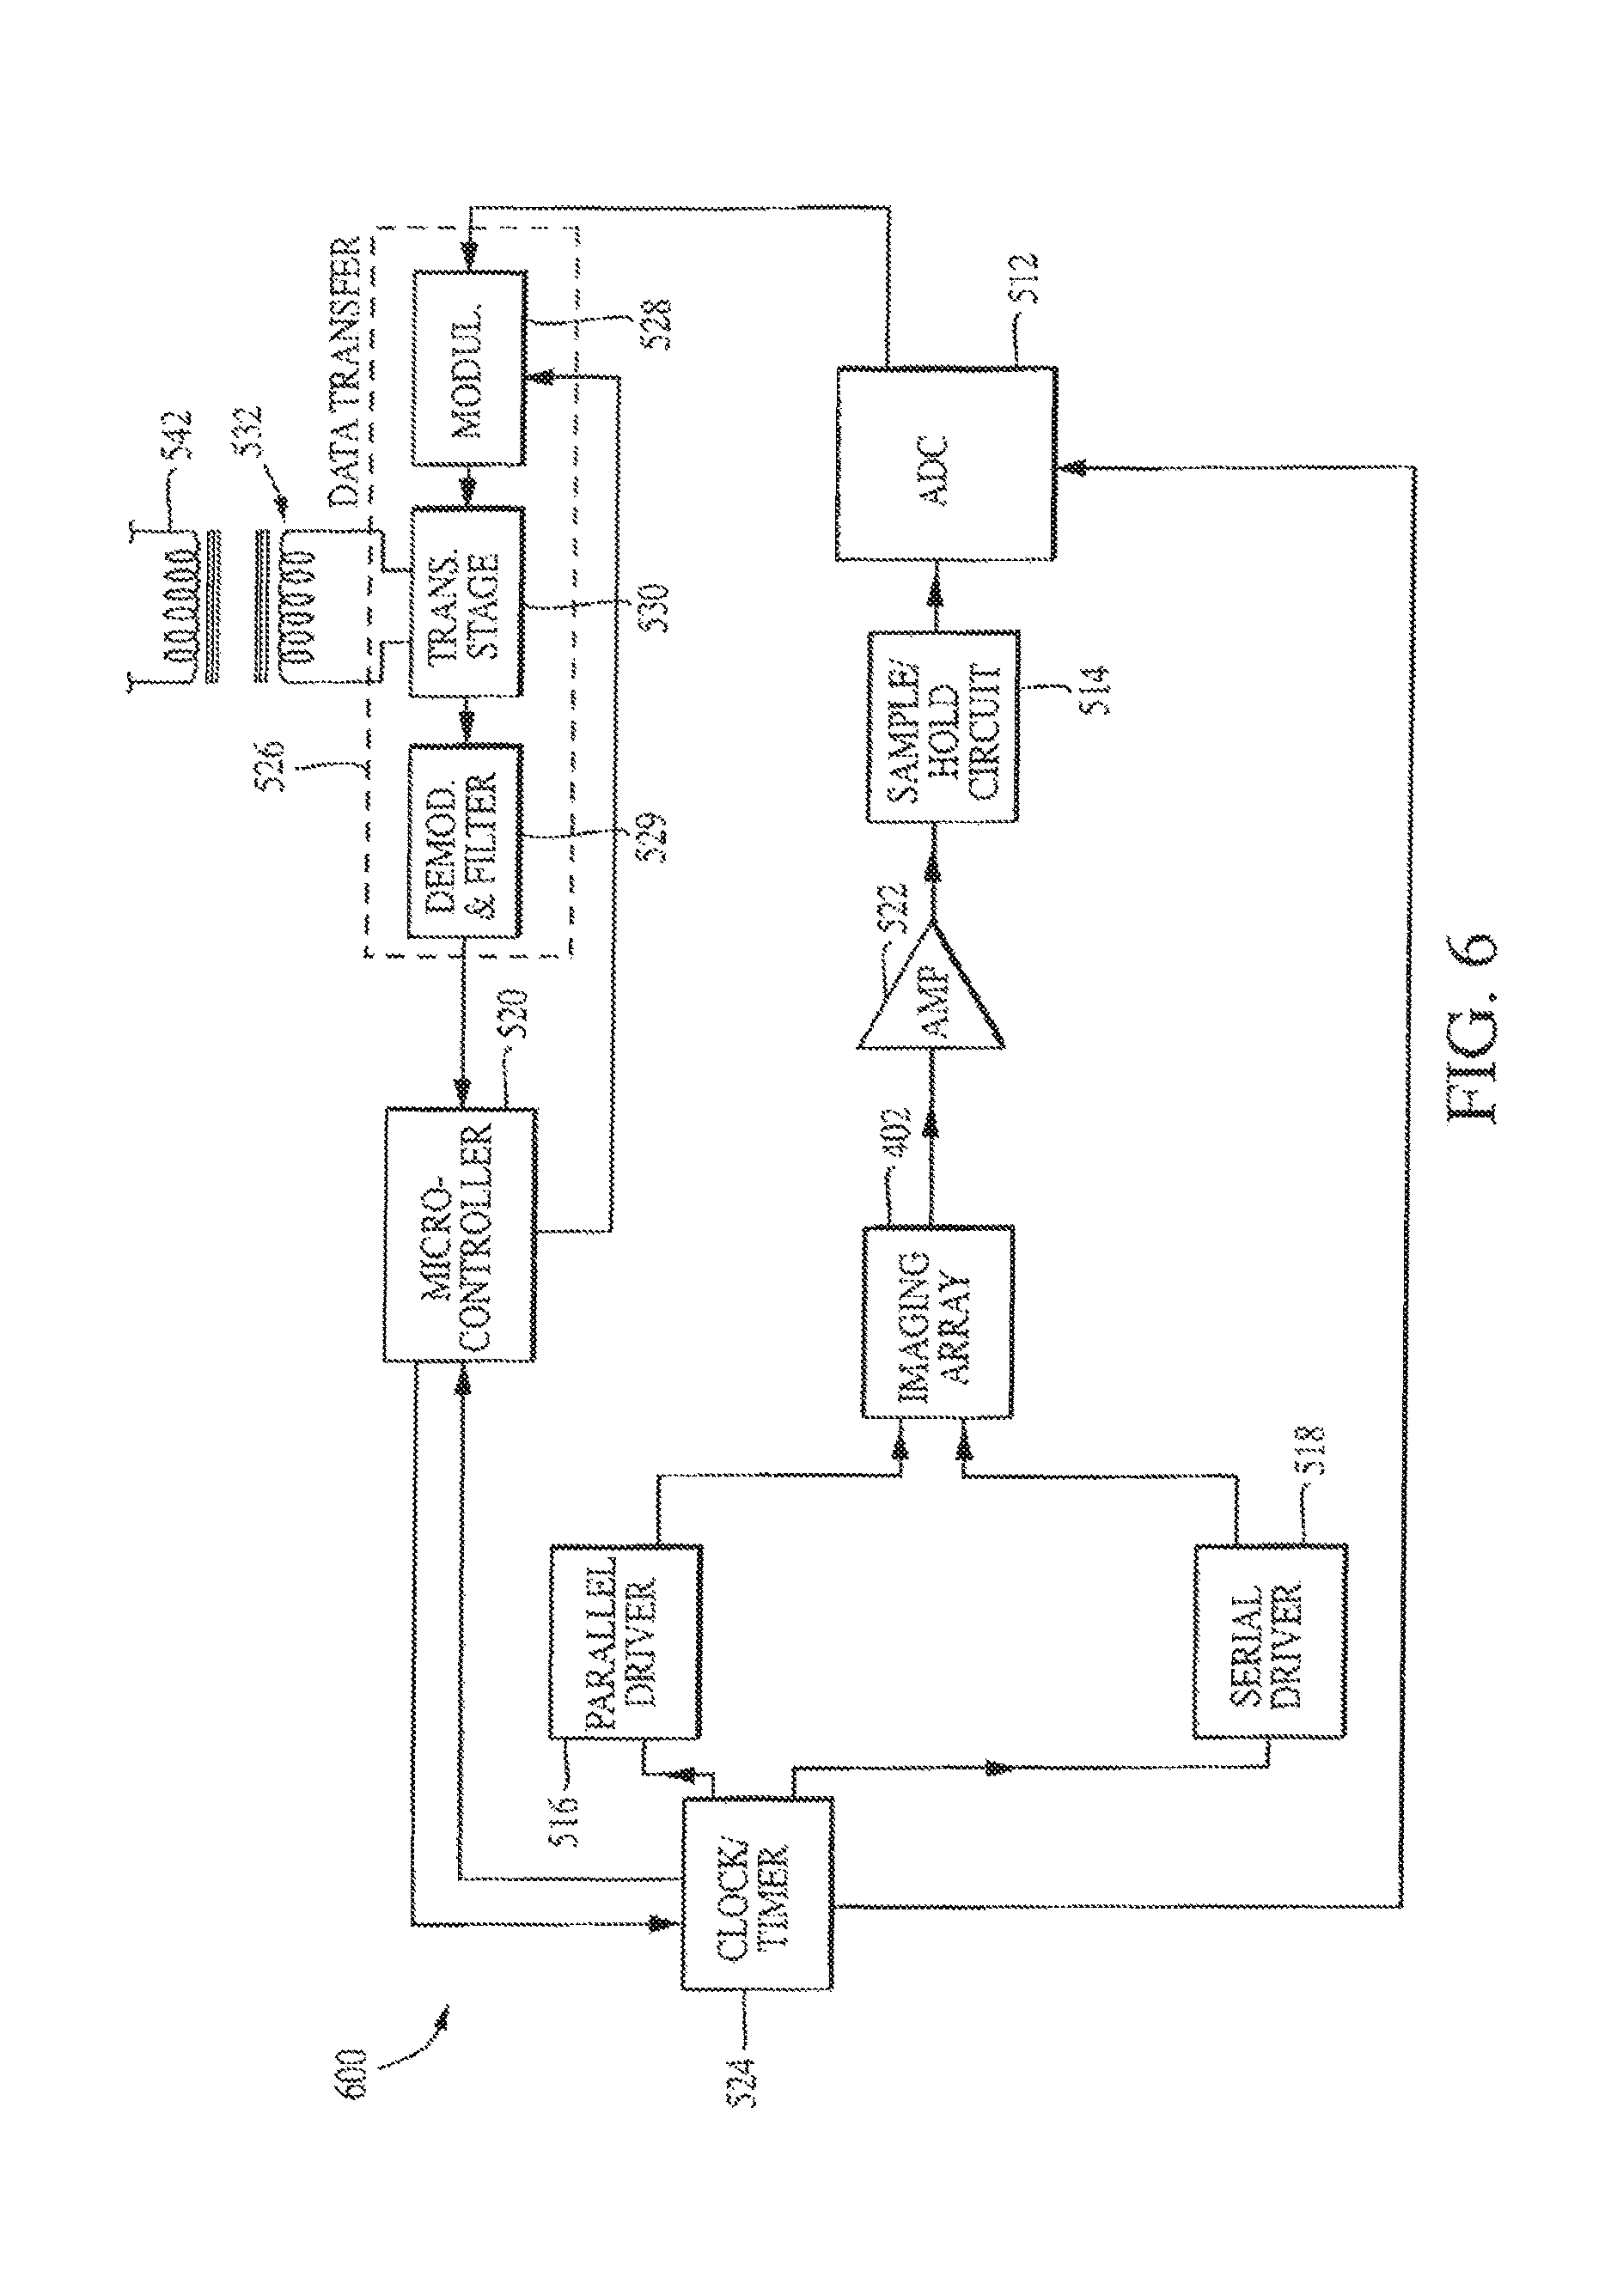 Patent Us 9913575 B2 Current Devices Raytheon Linear Integrated Circuits 1989 P 4247